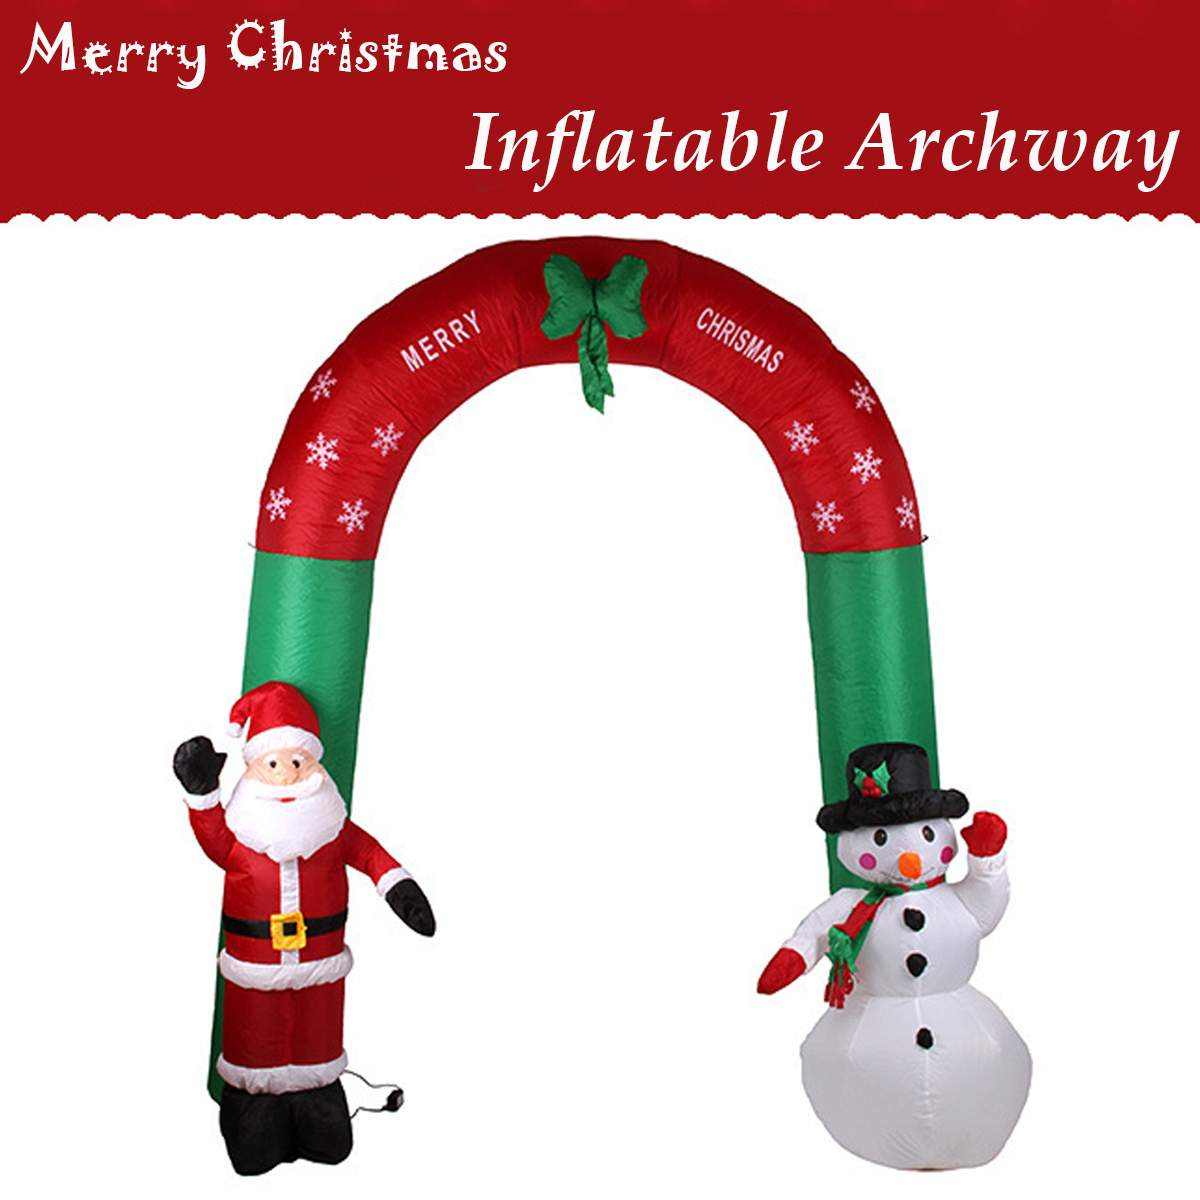 2.4M Giant Inflatable  Snow Arches Toy Santa Claus Christmas Decoration For Hotels Supper Market Entertainment Venues Holiday2.4M Giant Inflatable  Snow Arches Toy Santa Claus Christmas Decoration For Hotels Supper Market Entertainment Venues Holiday